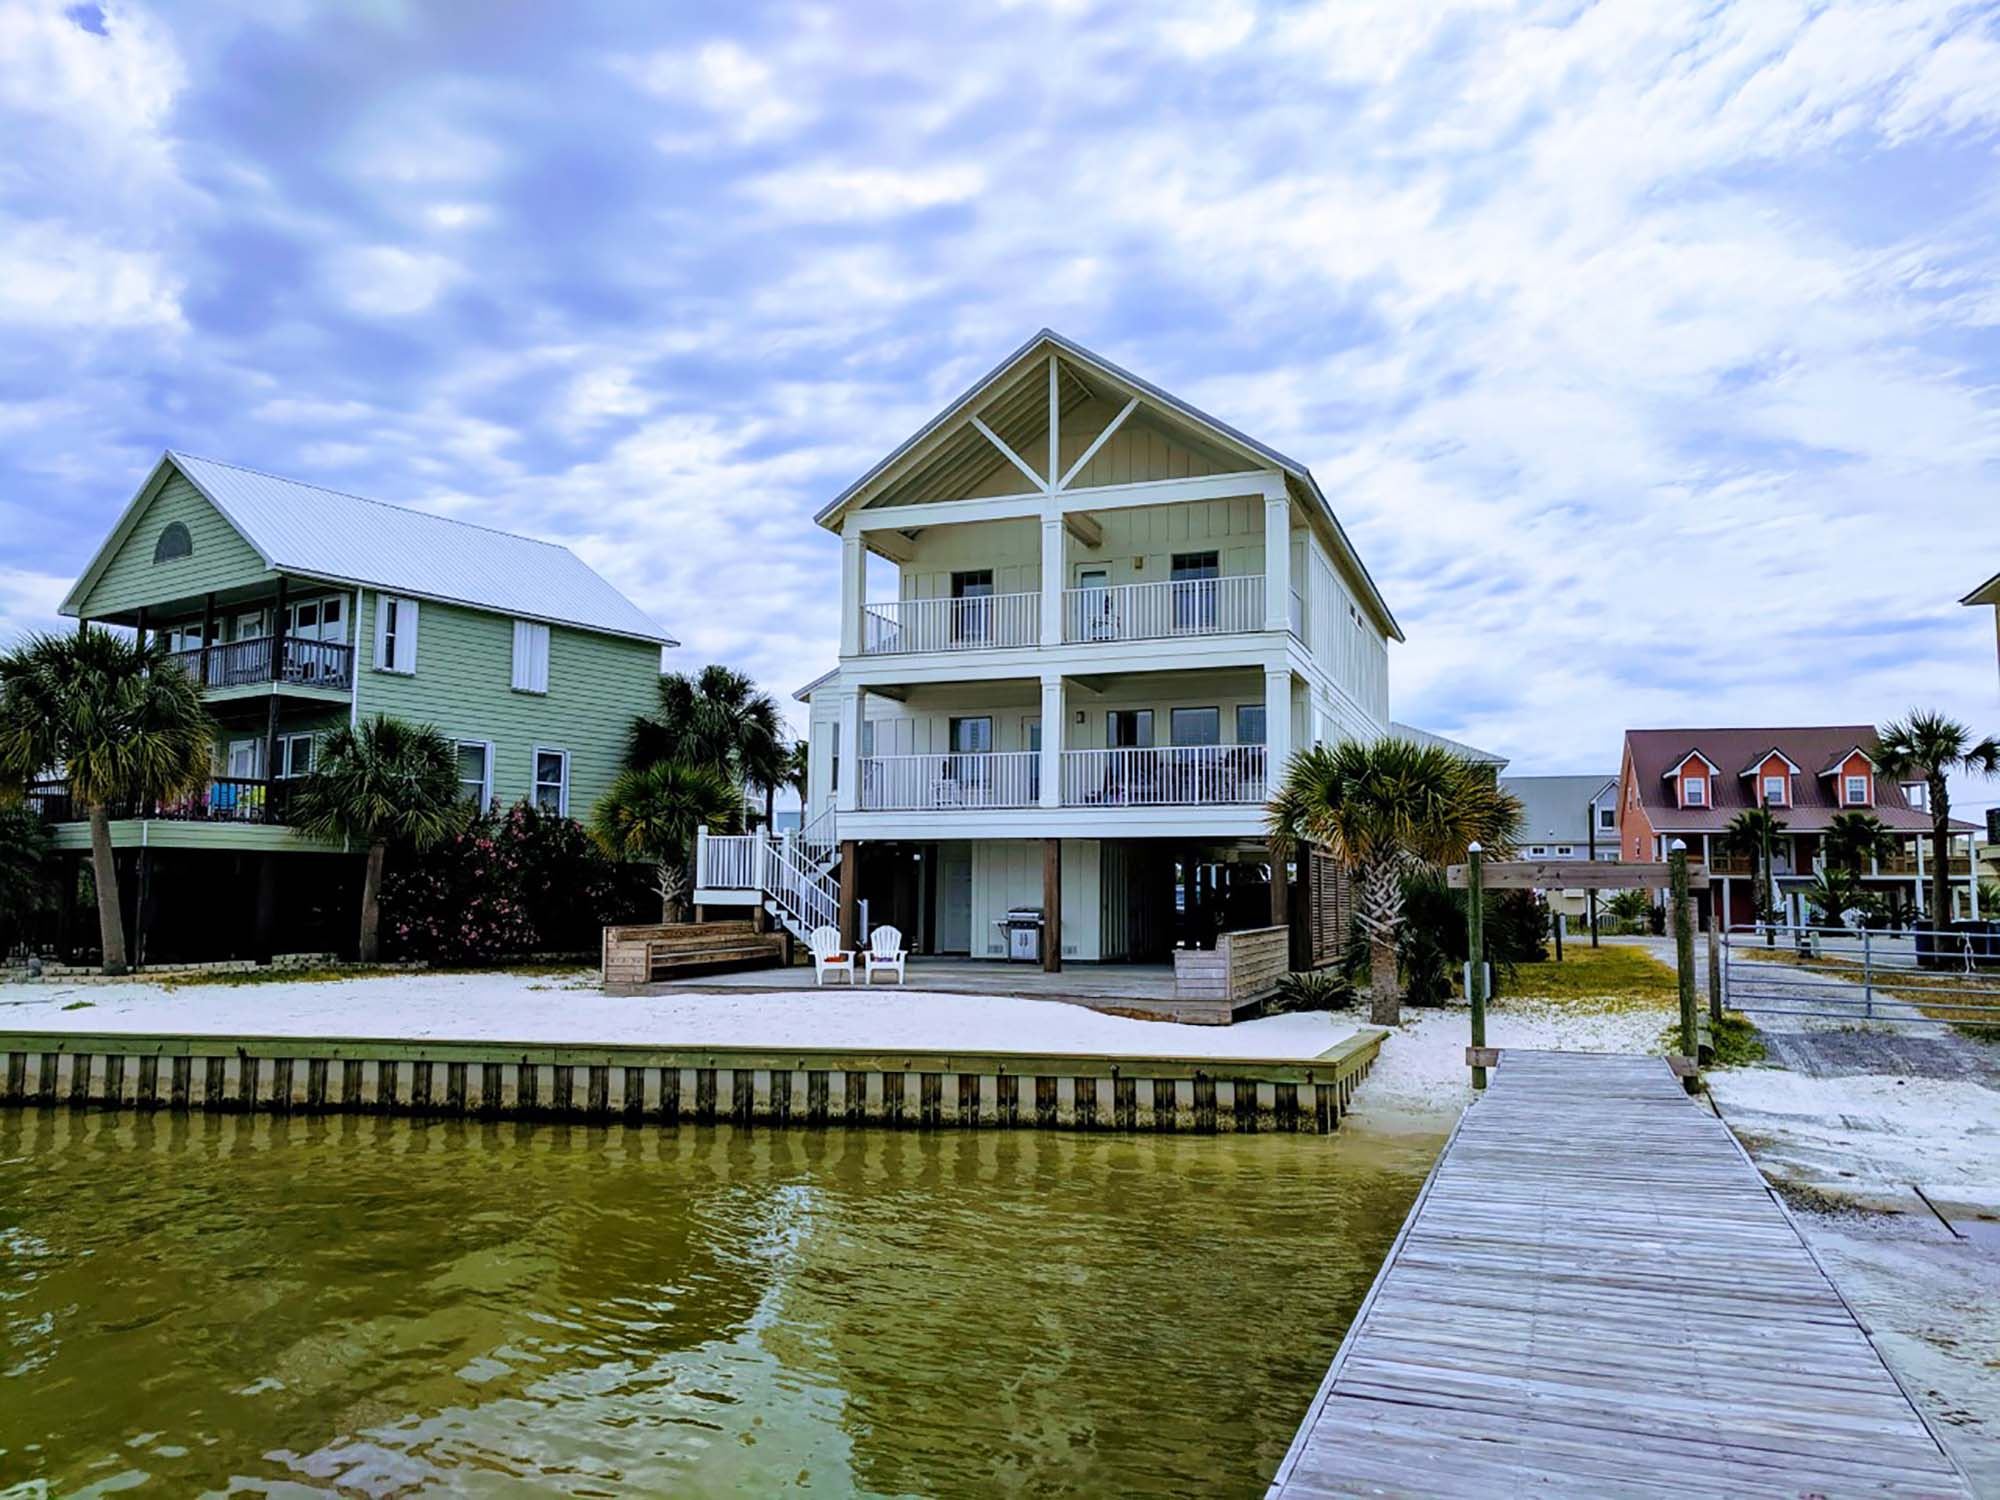 Work From Home at the Beach in Gulf Shores, Gulf Shores Vacation Home